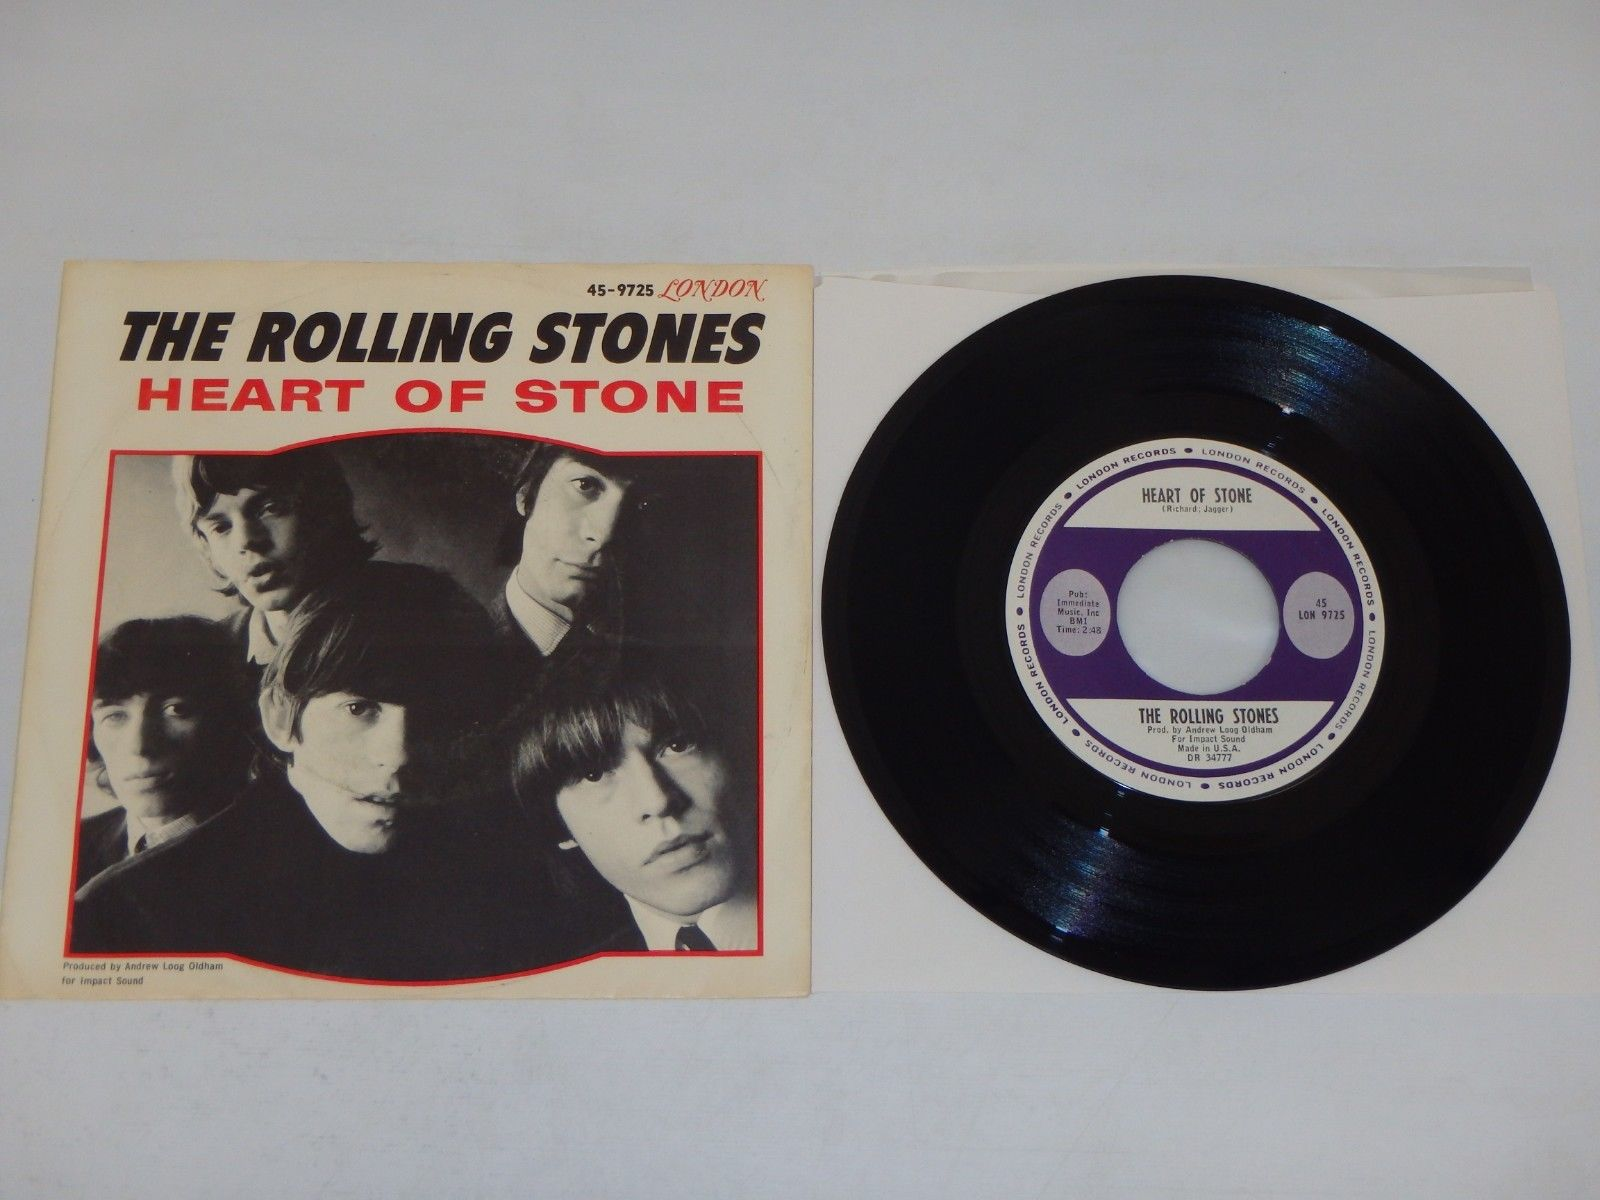 THE ROLLING STONES Heart Of Stone/ What A Shame 1964 EX  w/PS London 45-LON 9725